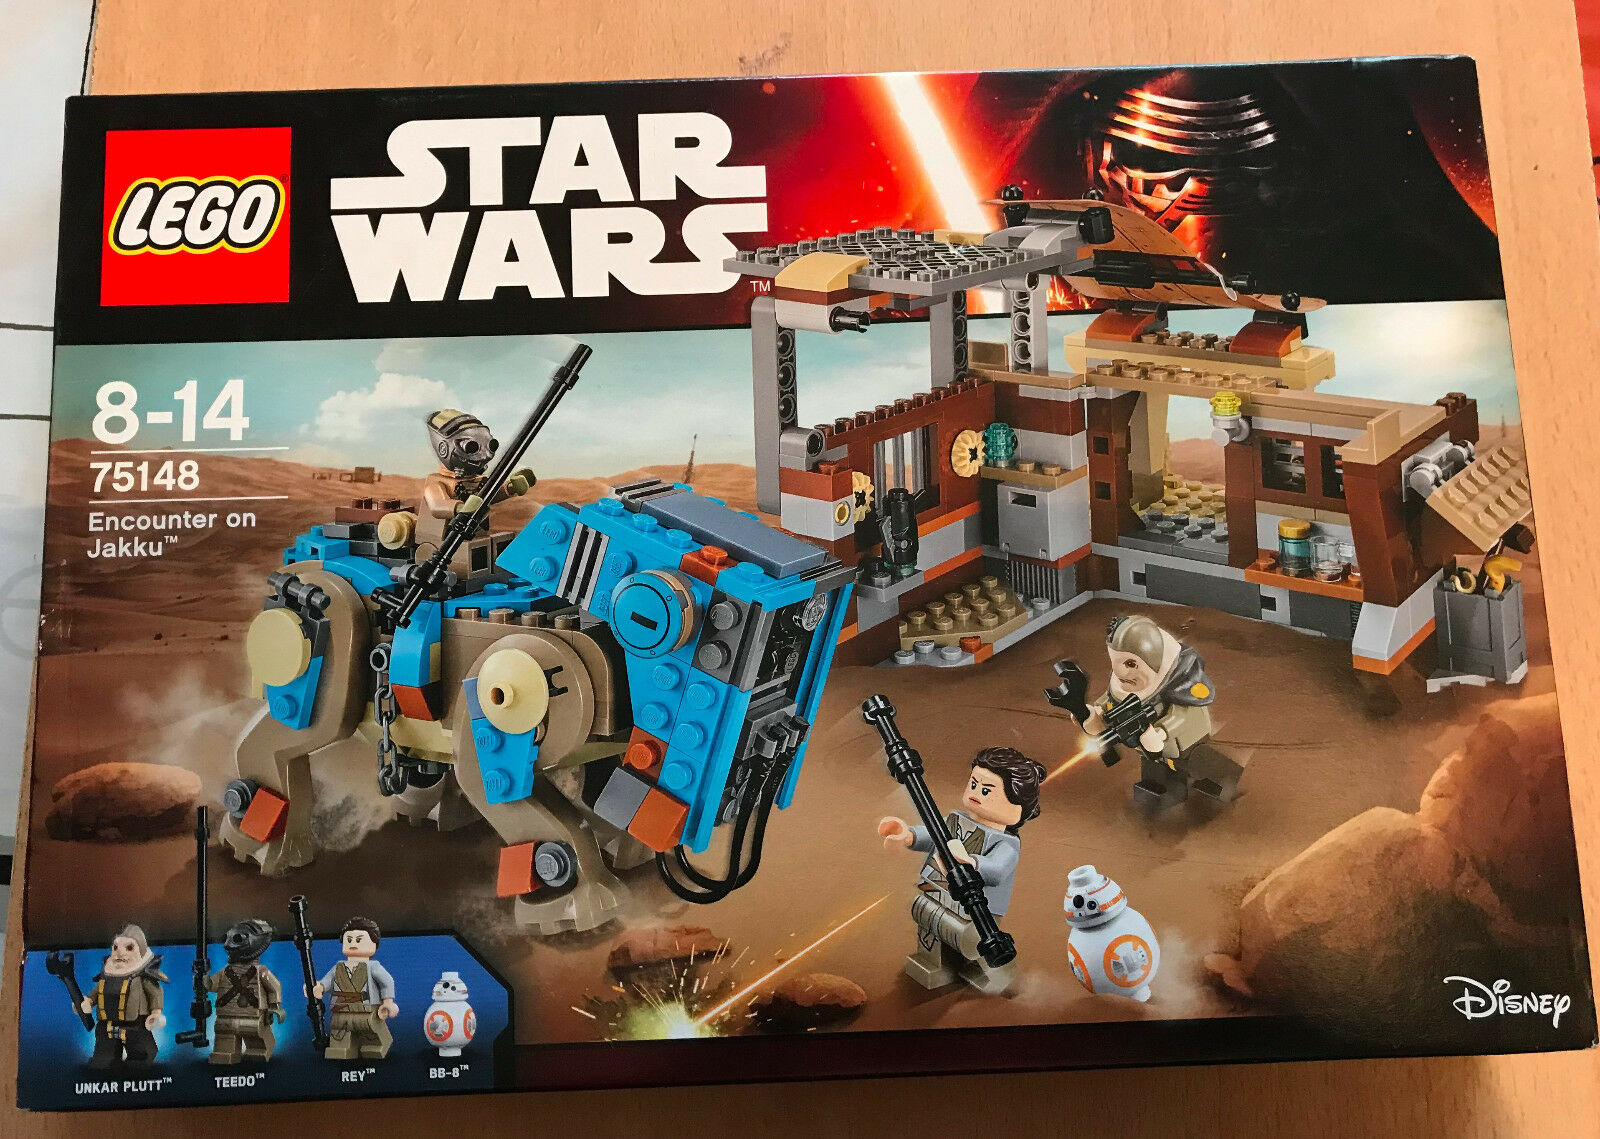 LEGO SET BOITE NEUF STAR WARS VAISSEAU 75148 ENCOUNTER ON JAKKU TEEDO REY BB-8